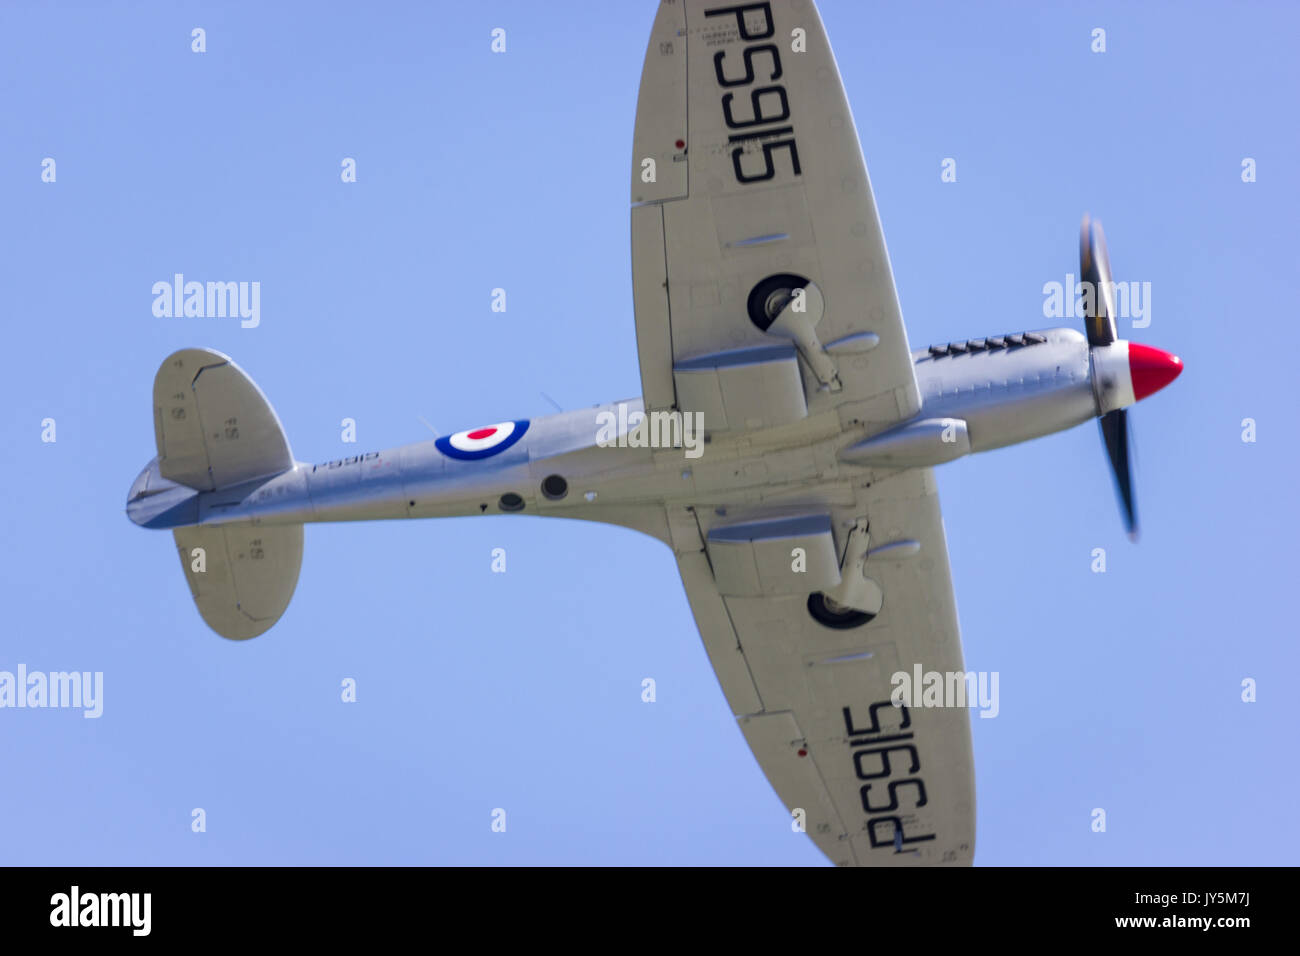 Eastbourne, East Sussex, United Kingdom. 18th Aug, 2017.BBMF Spitfire PS915 flies at the 25th Eastbourne Airshow Credit: Alan Fraser/Alamy Live News - Stock Image